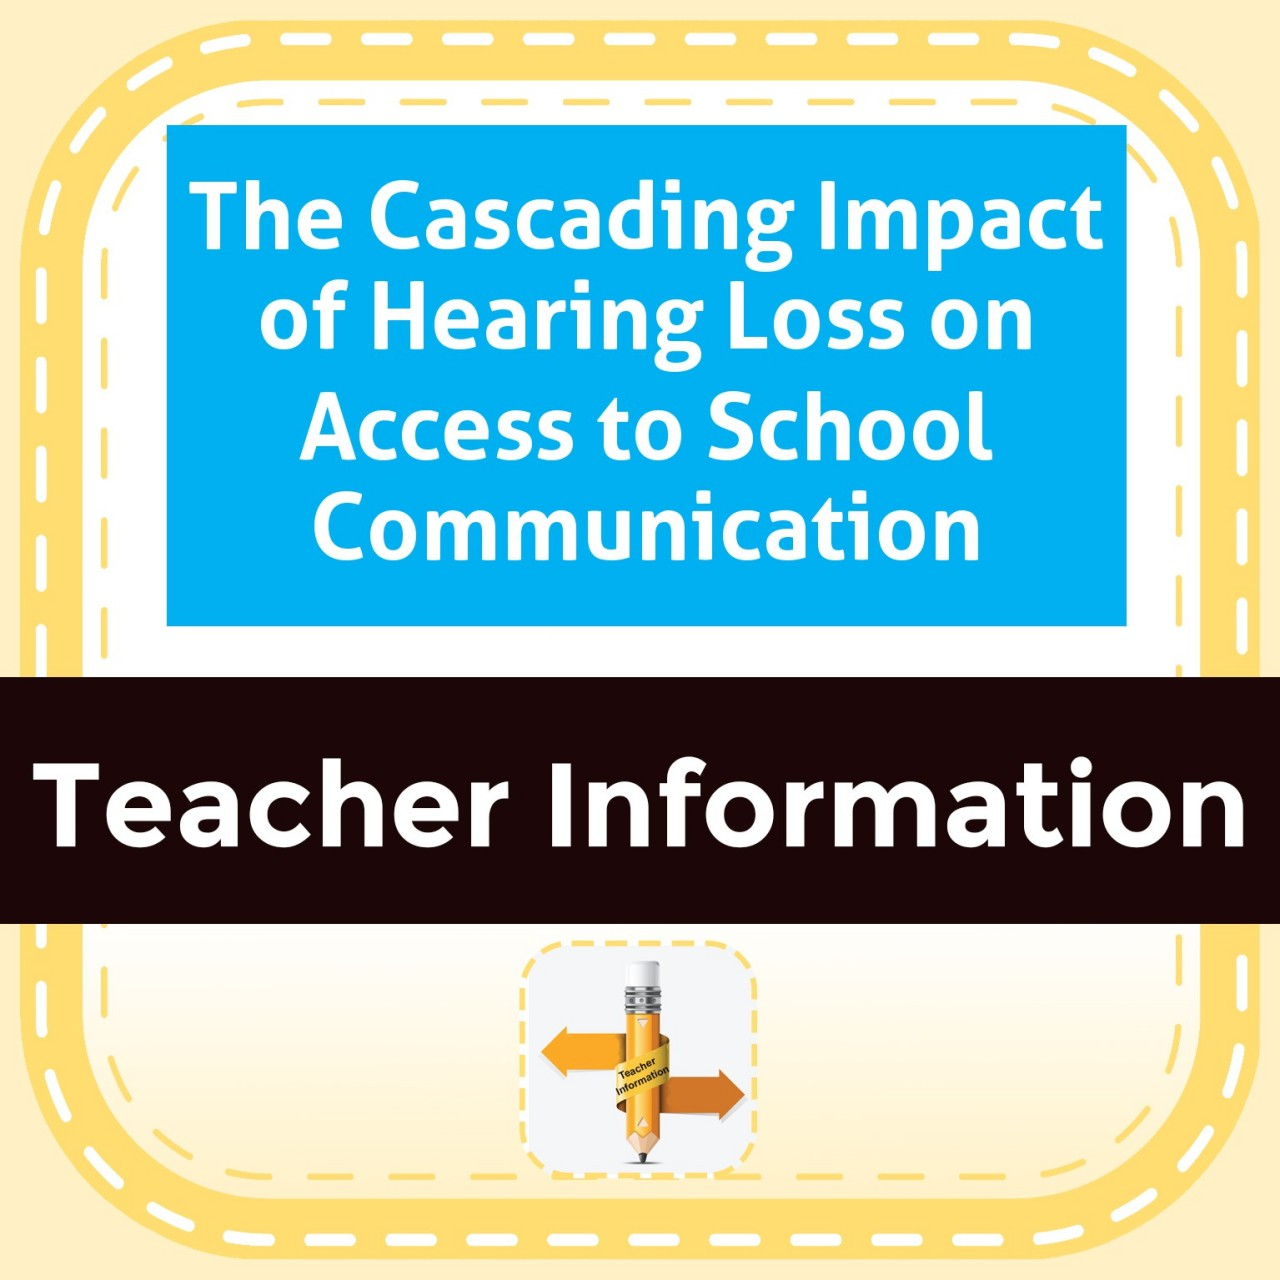 The Cascading Impact of Hearing Loss on Access to School Communication